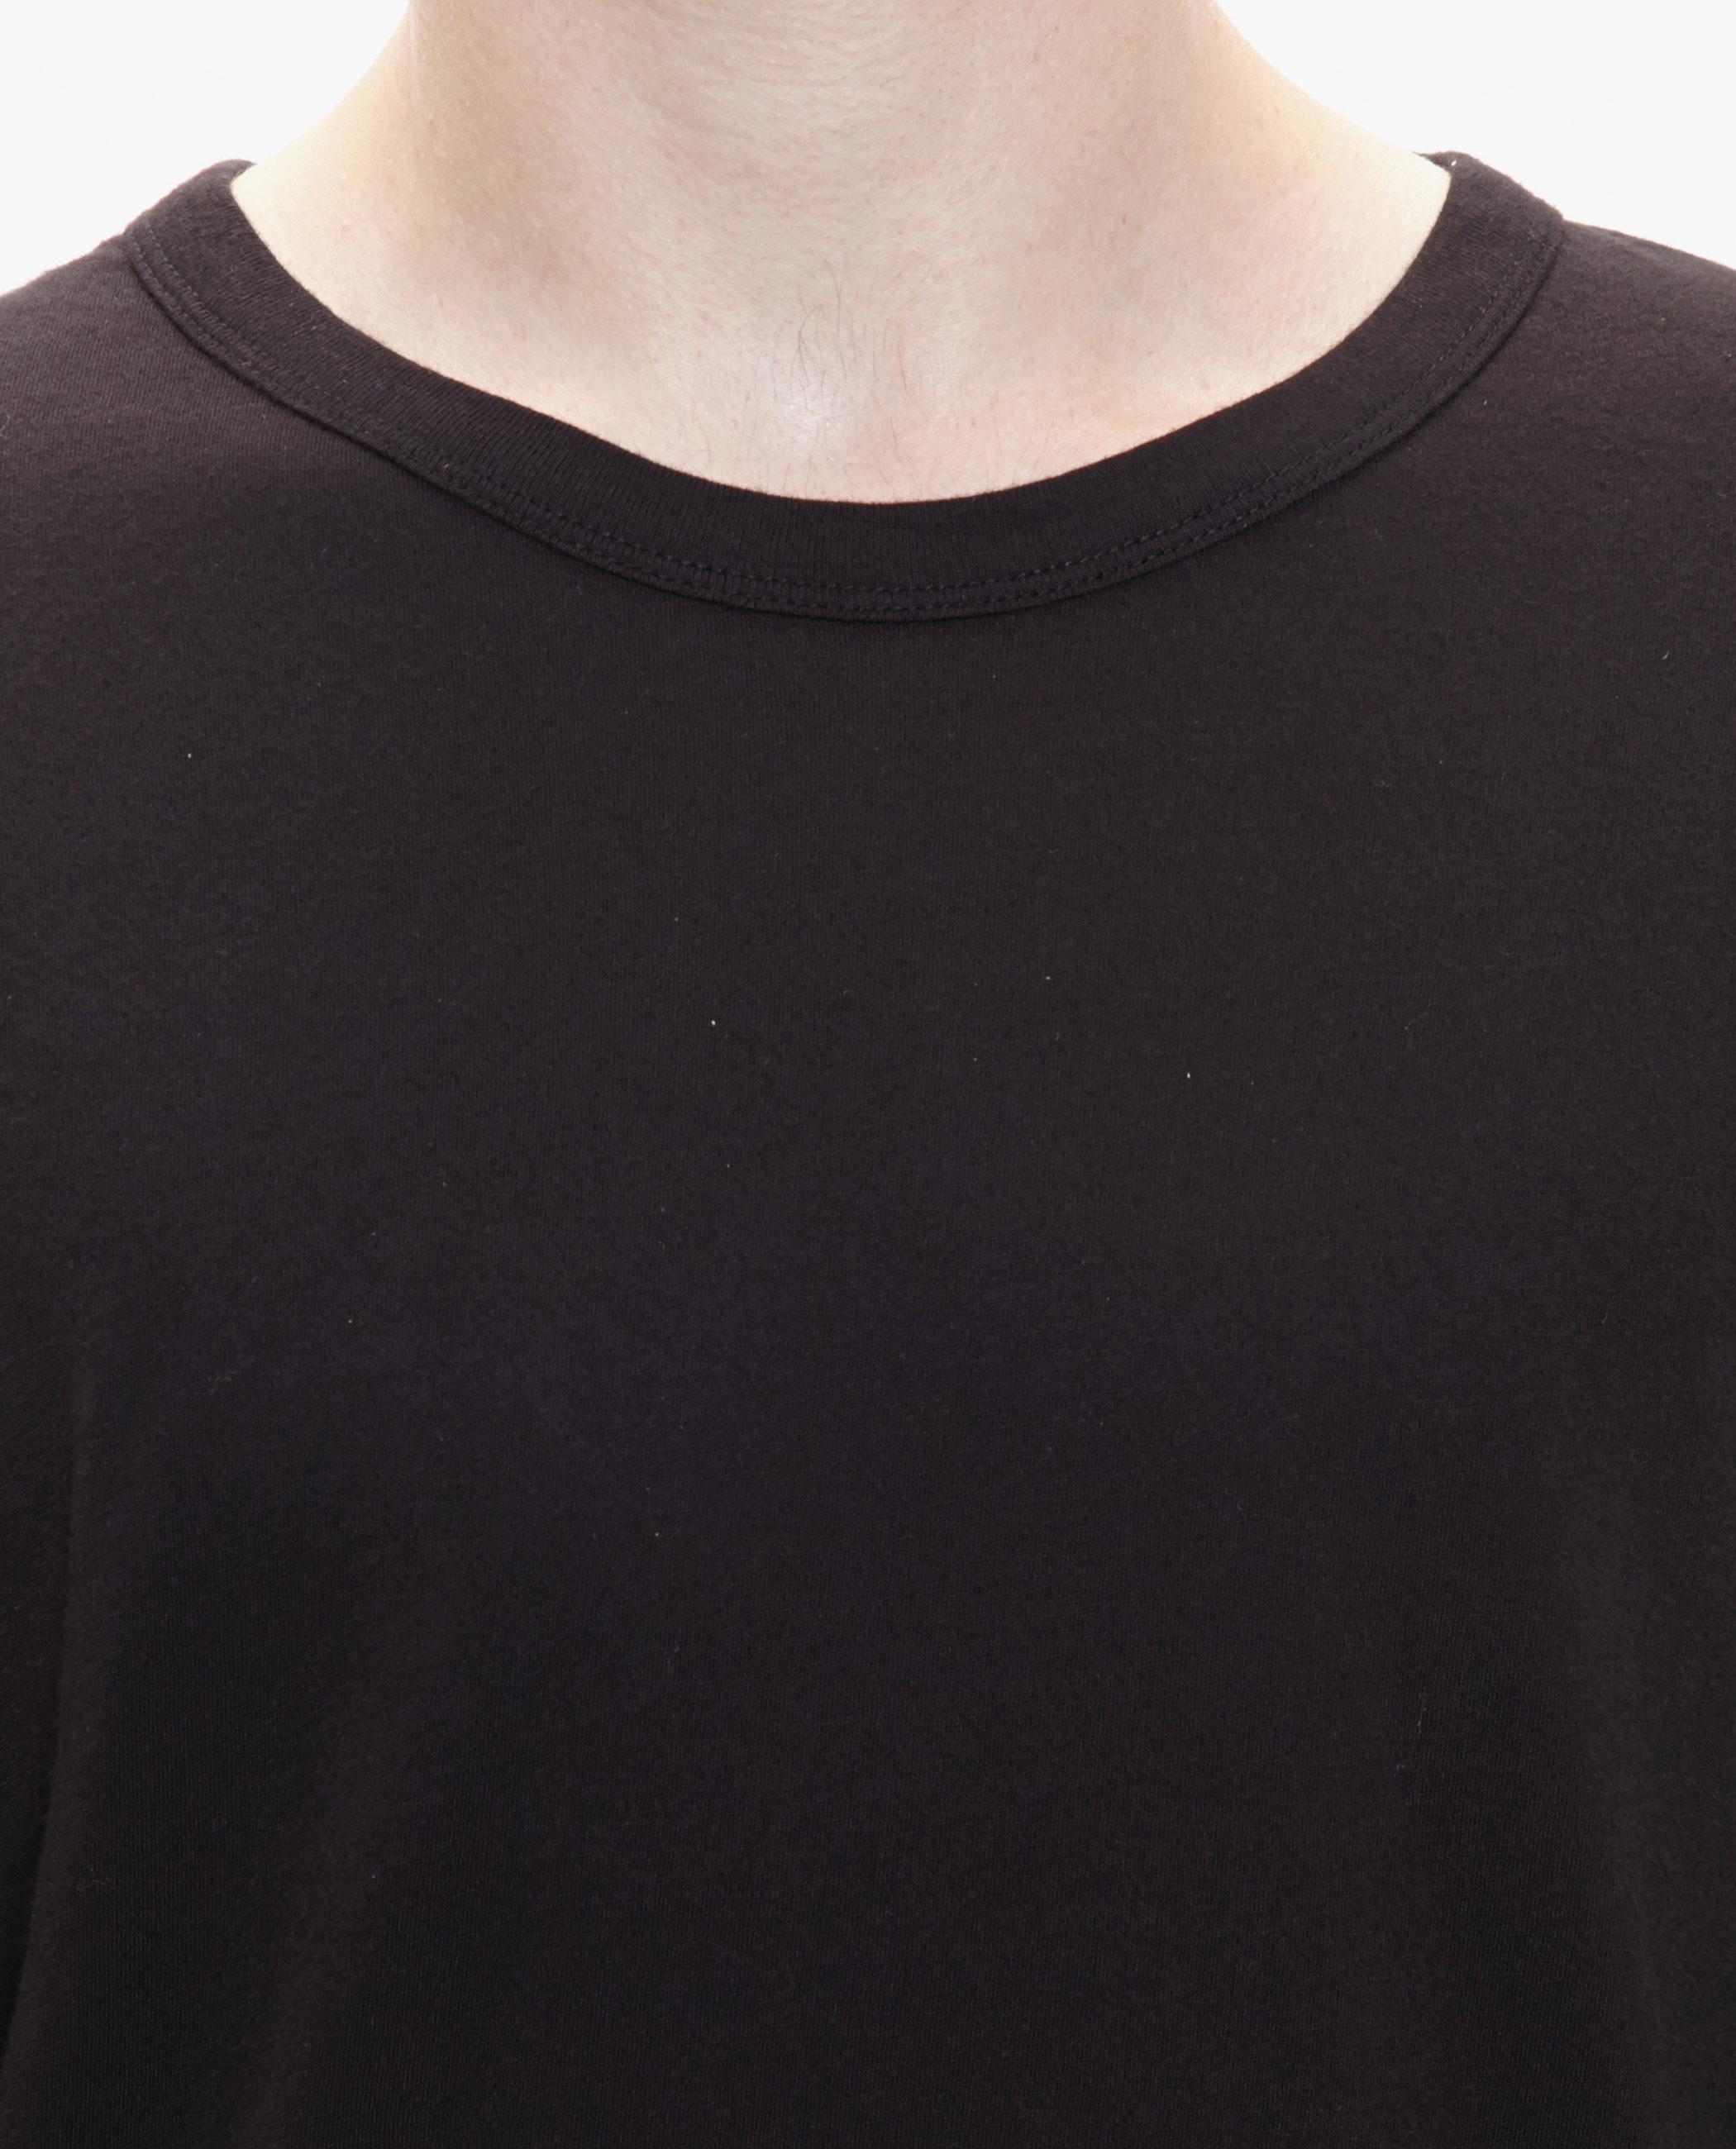 T by alexander wang Longsleeve Cotton Top in Black for Men | Lyst